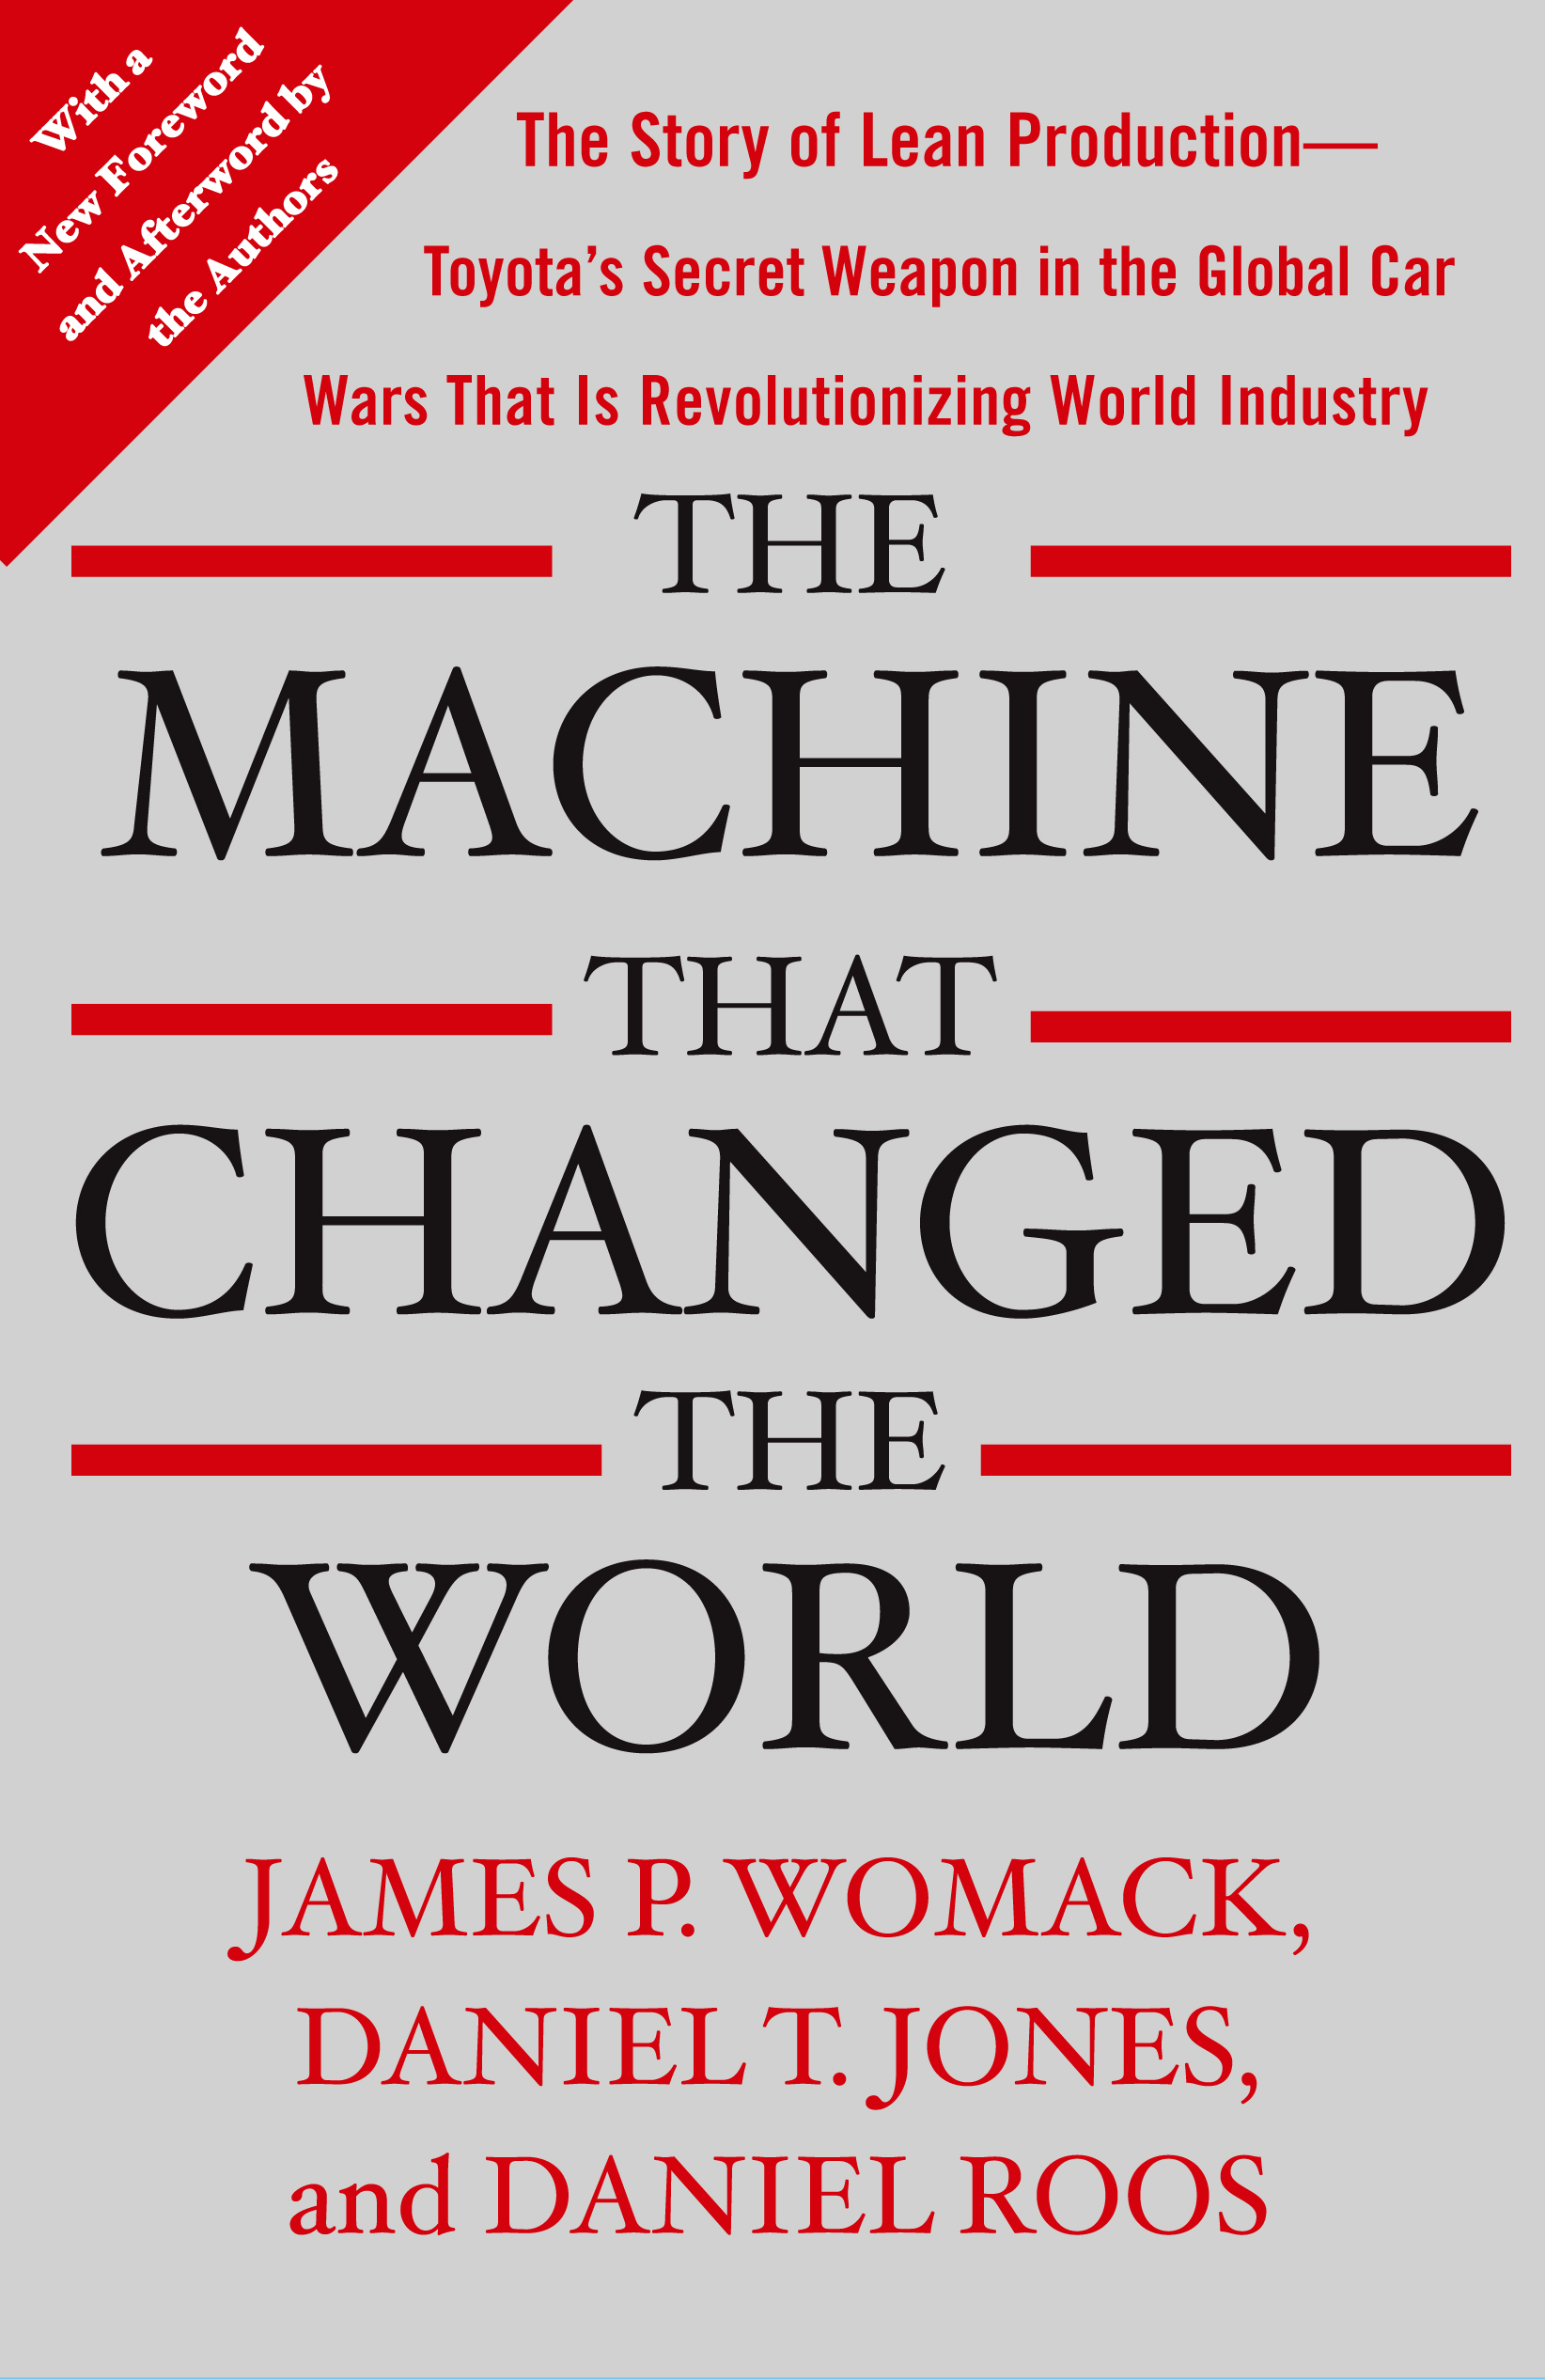 The machine that changed the world book by james p womack the story of lean production toyotas secret weapon in the global car wars that is now revolutionizing world industry fandeluxe Epub